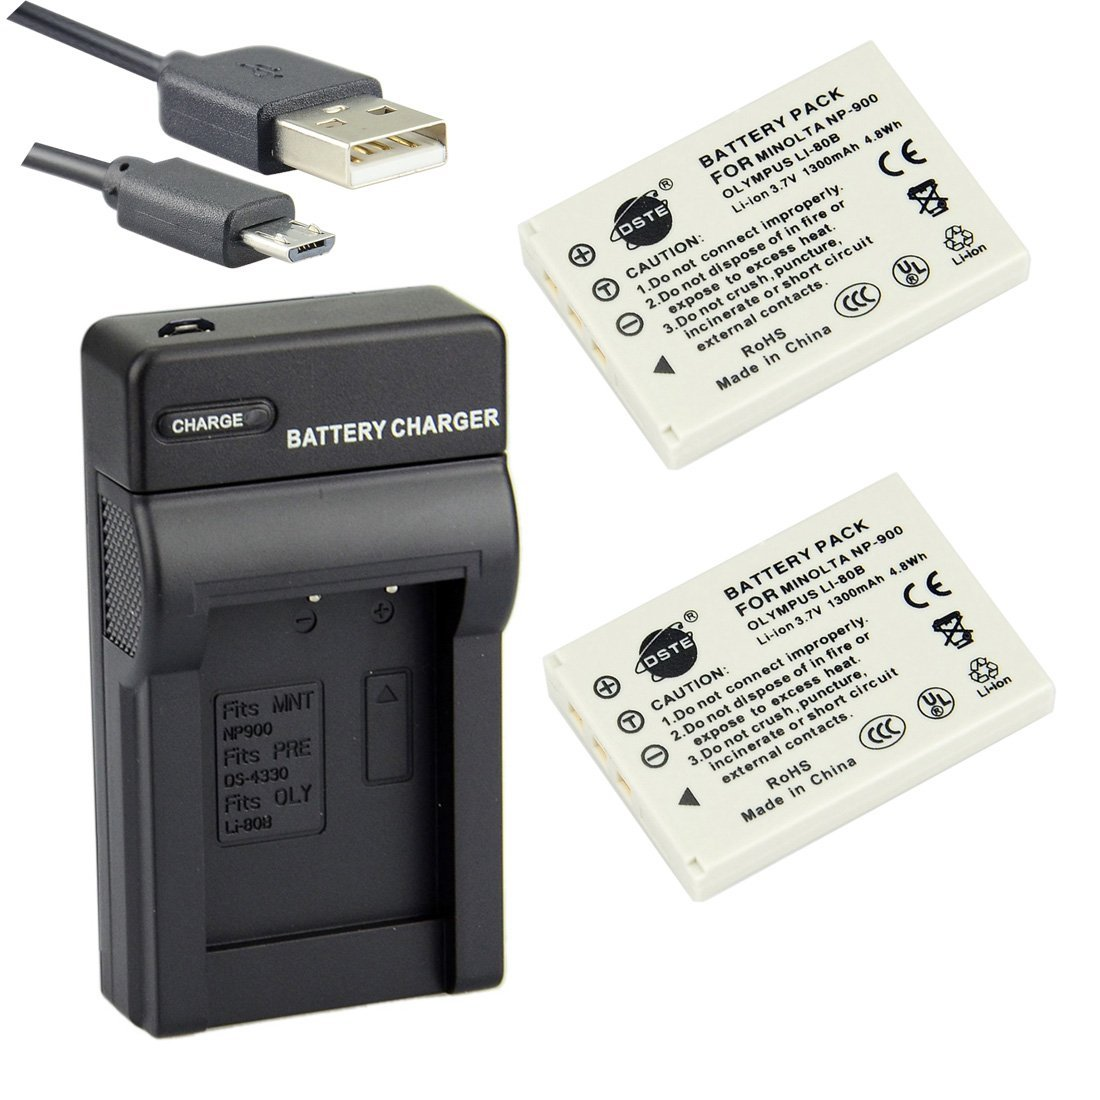 DSTE Li-80B Li-ion Battery (2-Pack) and Micro USB Charger Suit for Olympus T-100,T-110,X-36